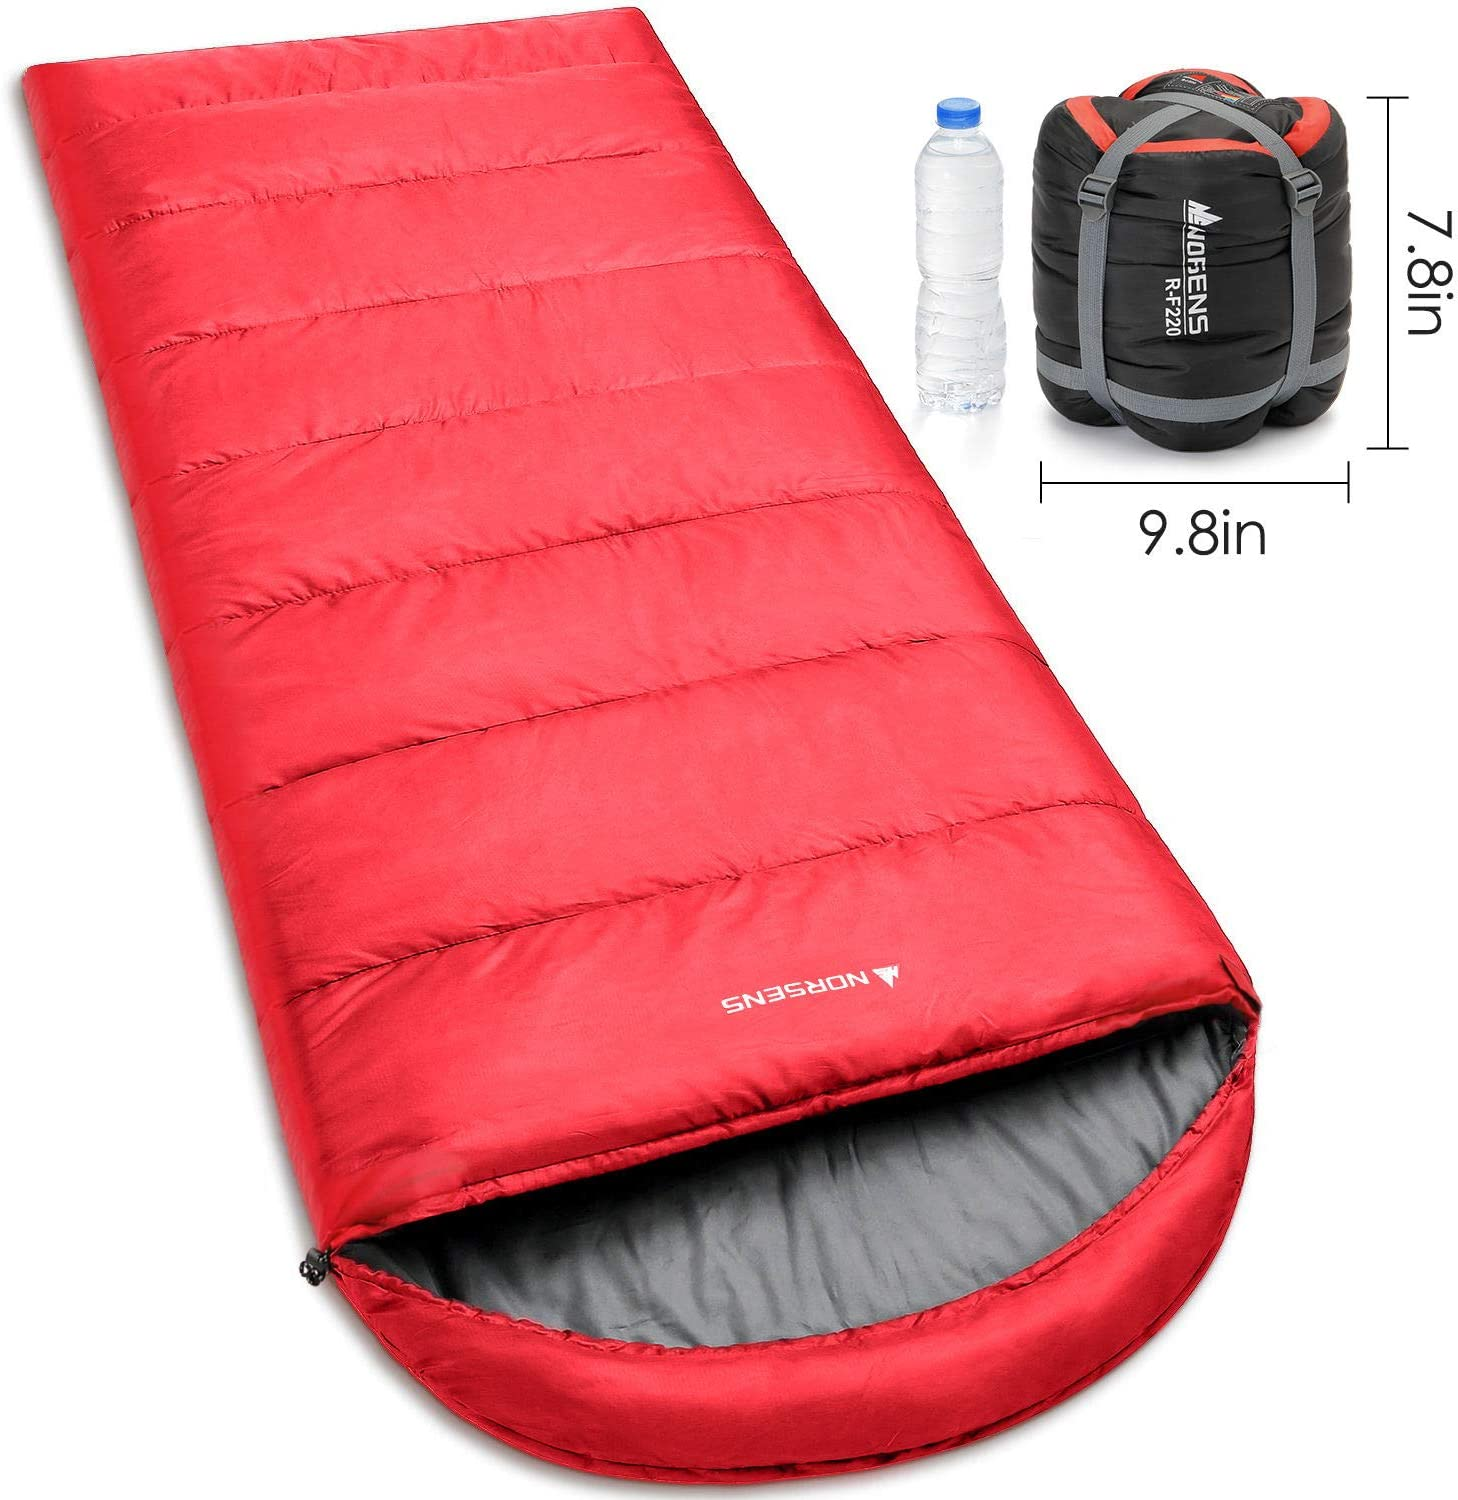 NORSENS Ultralight Sleeping bag image